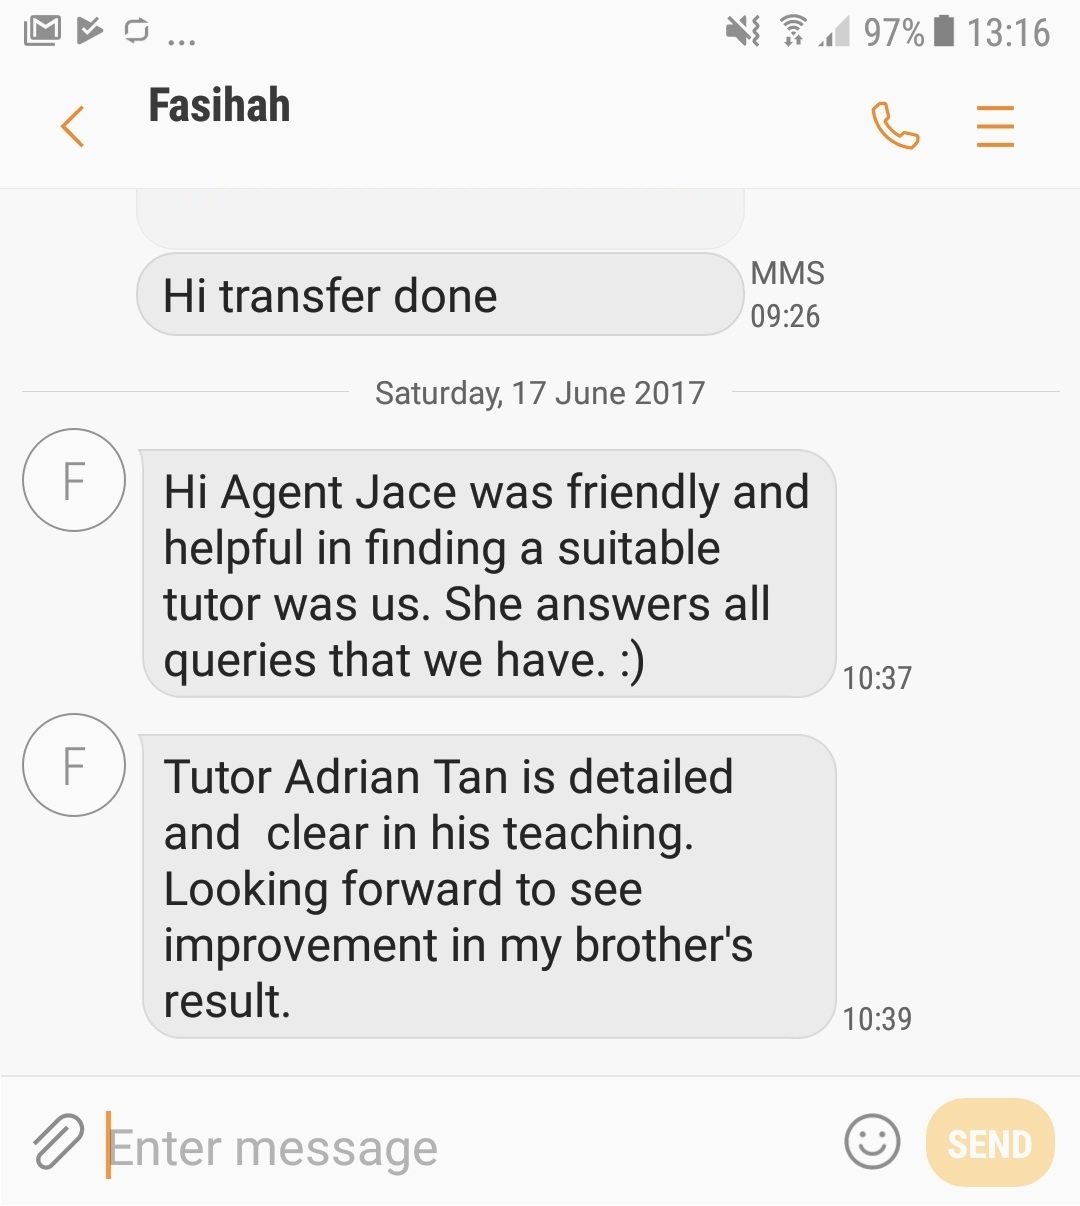 Review from Fasihah: Agent Jace was friendly and helpful in finding a suitable tutor for us. She answers all queries that we have :)